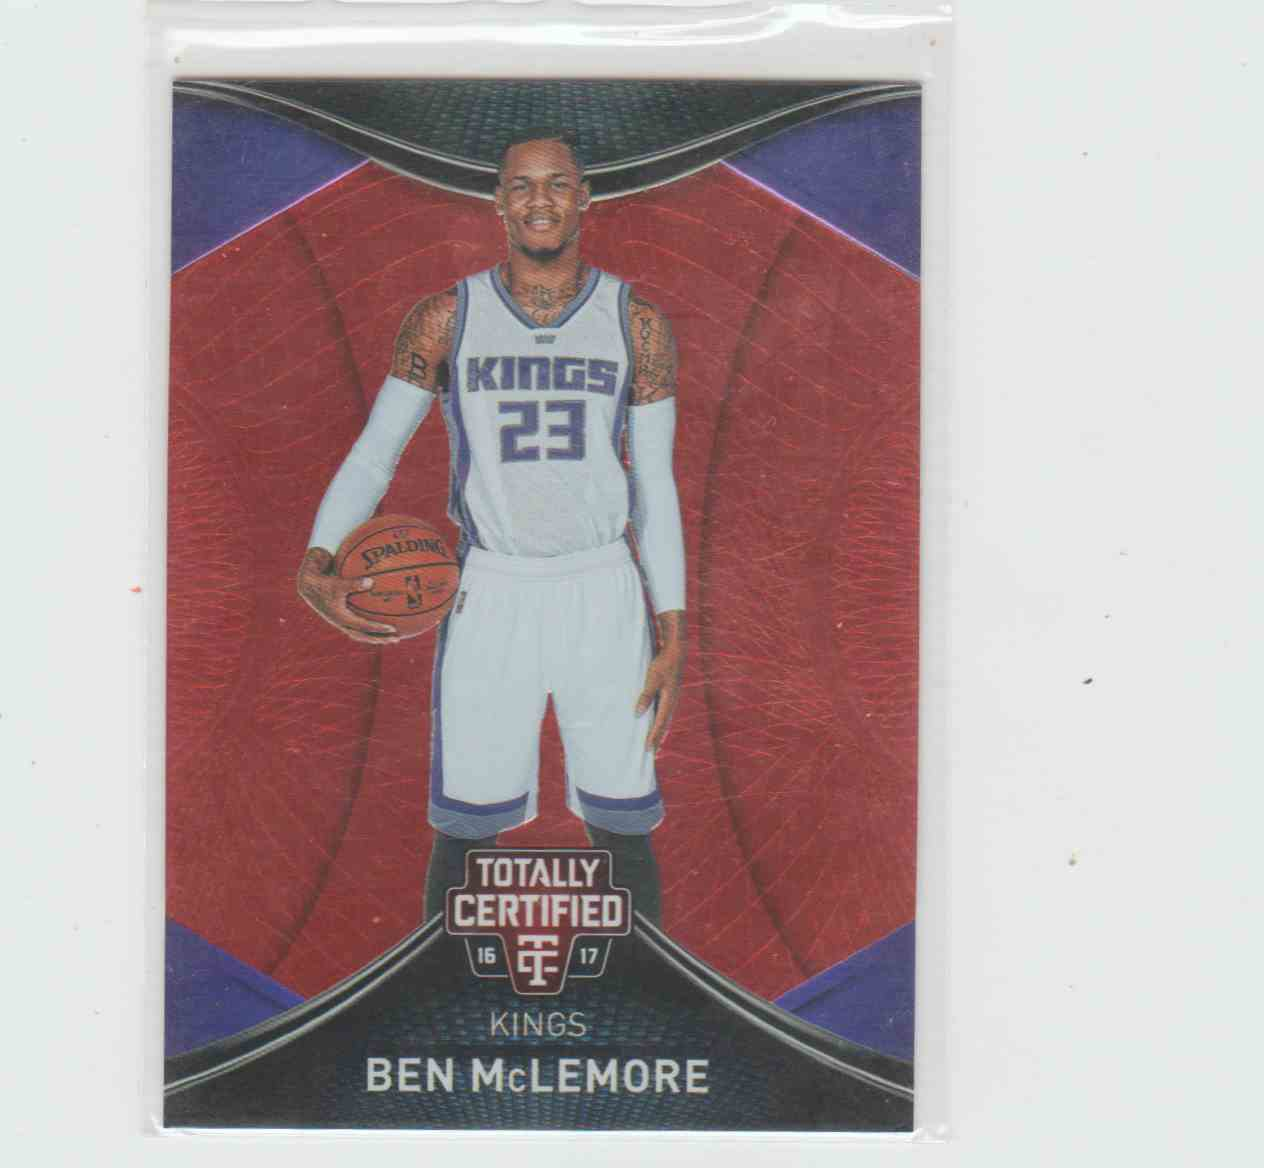 2016-17 Panini Panini Totally Certified Totally Certified Red Ben Mclemore 166/199 #20 card front image